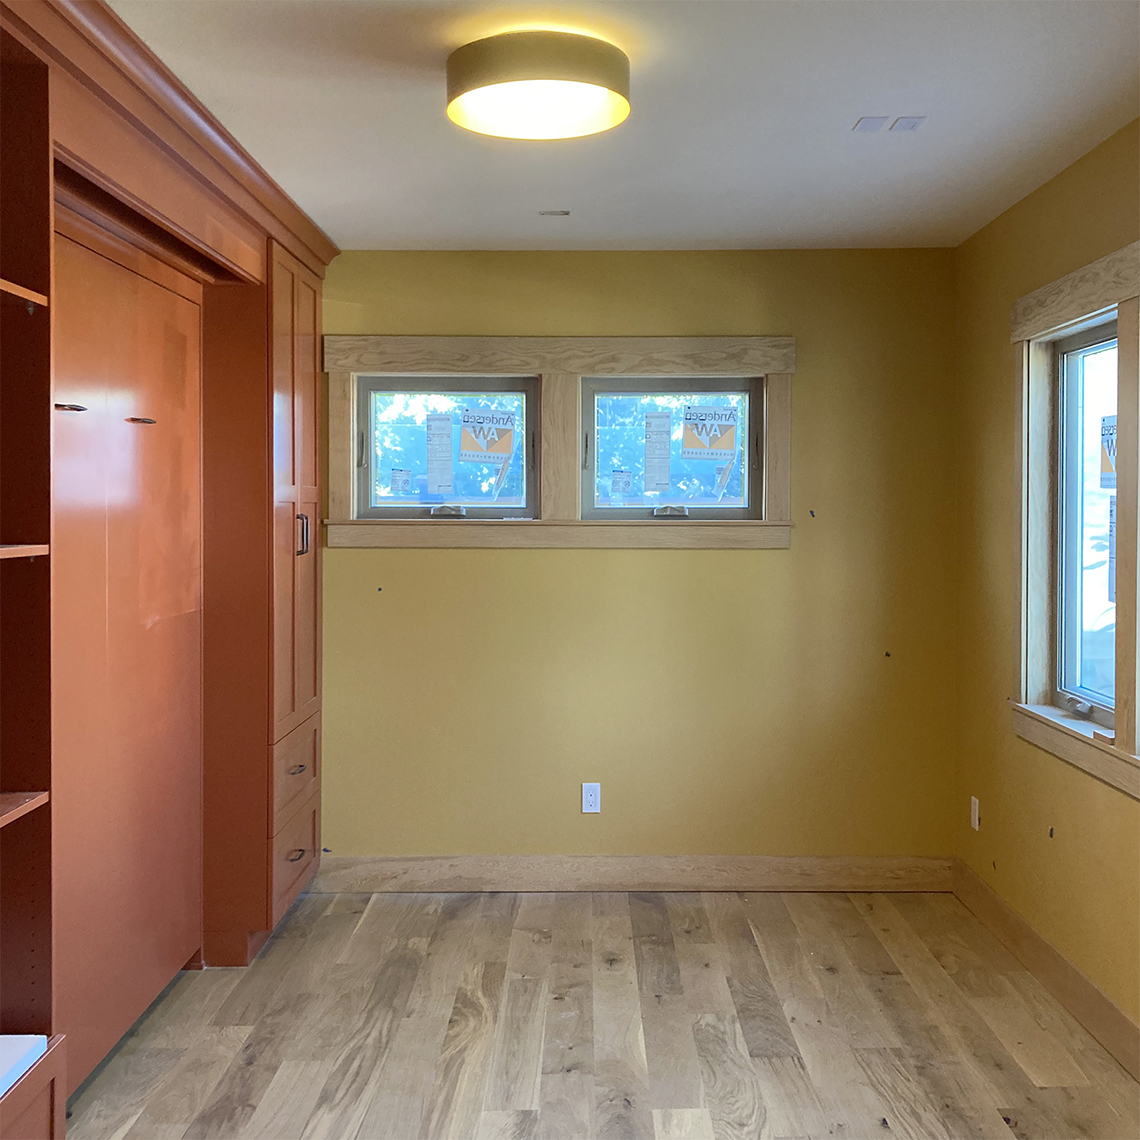 Brett Marlo Design Build Built Green 4-Star Tacoma remodel bedroom with murphy bed